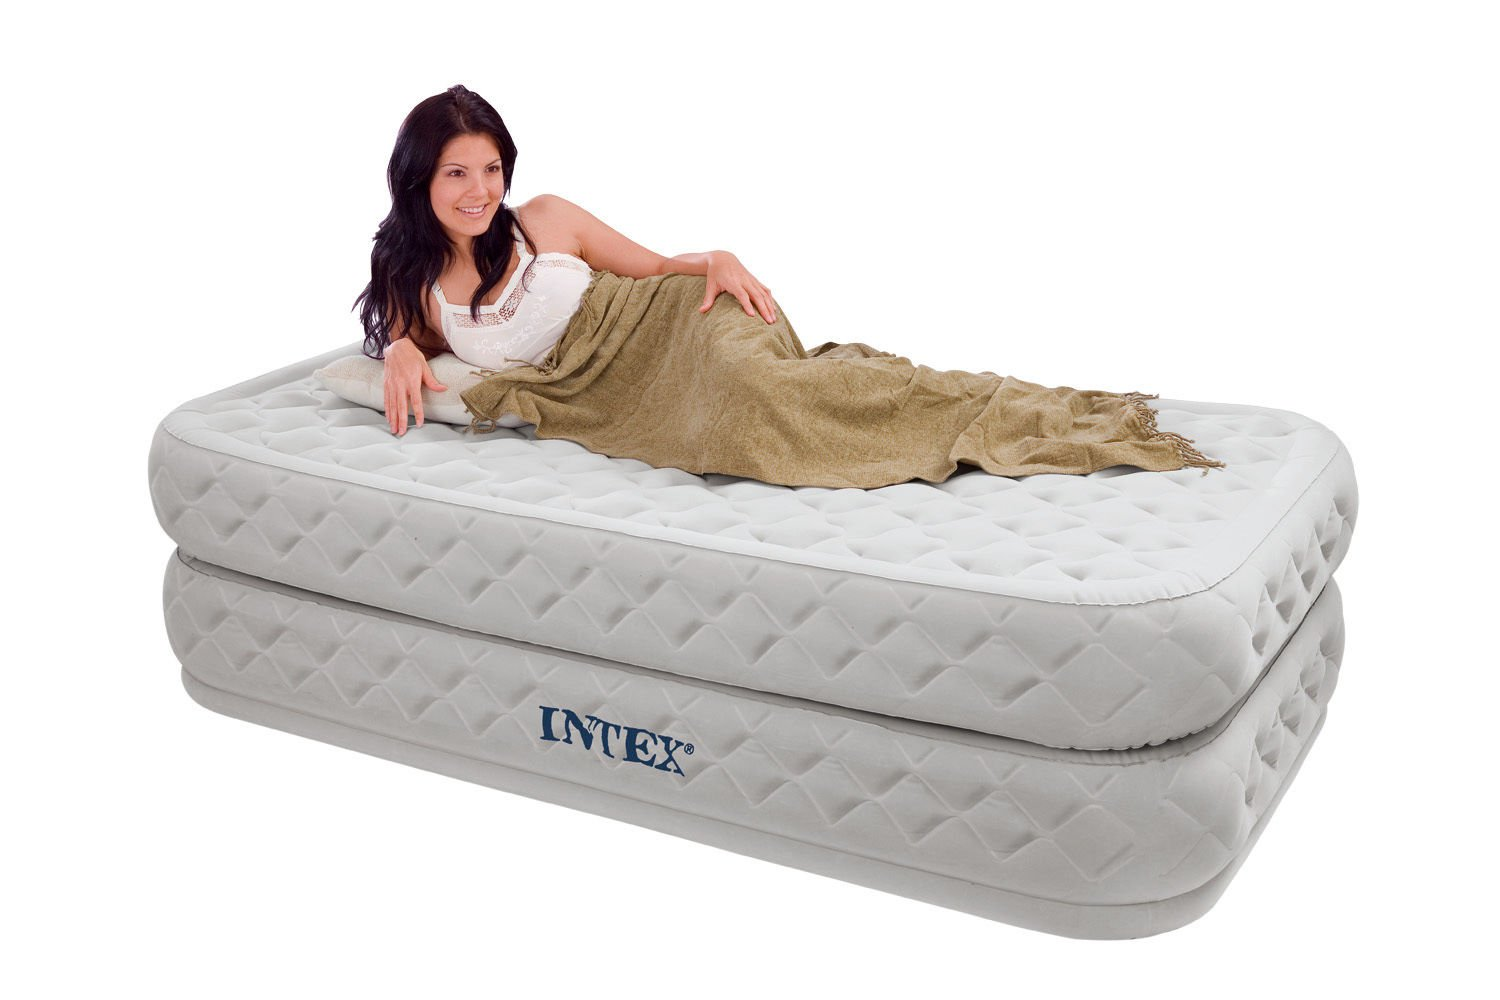 GREAT TWIN BED AIR MATTRESS WITH BUILT IN PUMP - A UNIQUE DESIGN PROVIDES THE ULTIMATE COMFORT FOR LUXURIOUS SLEEP